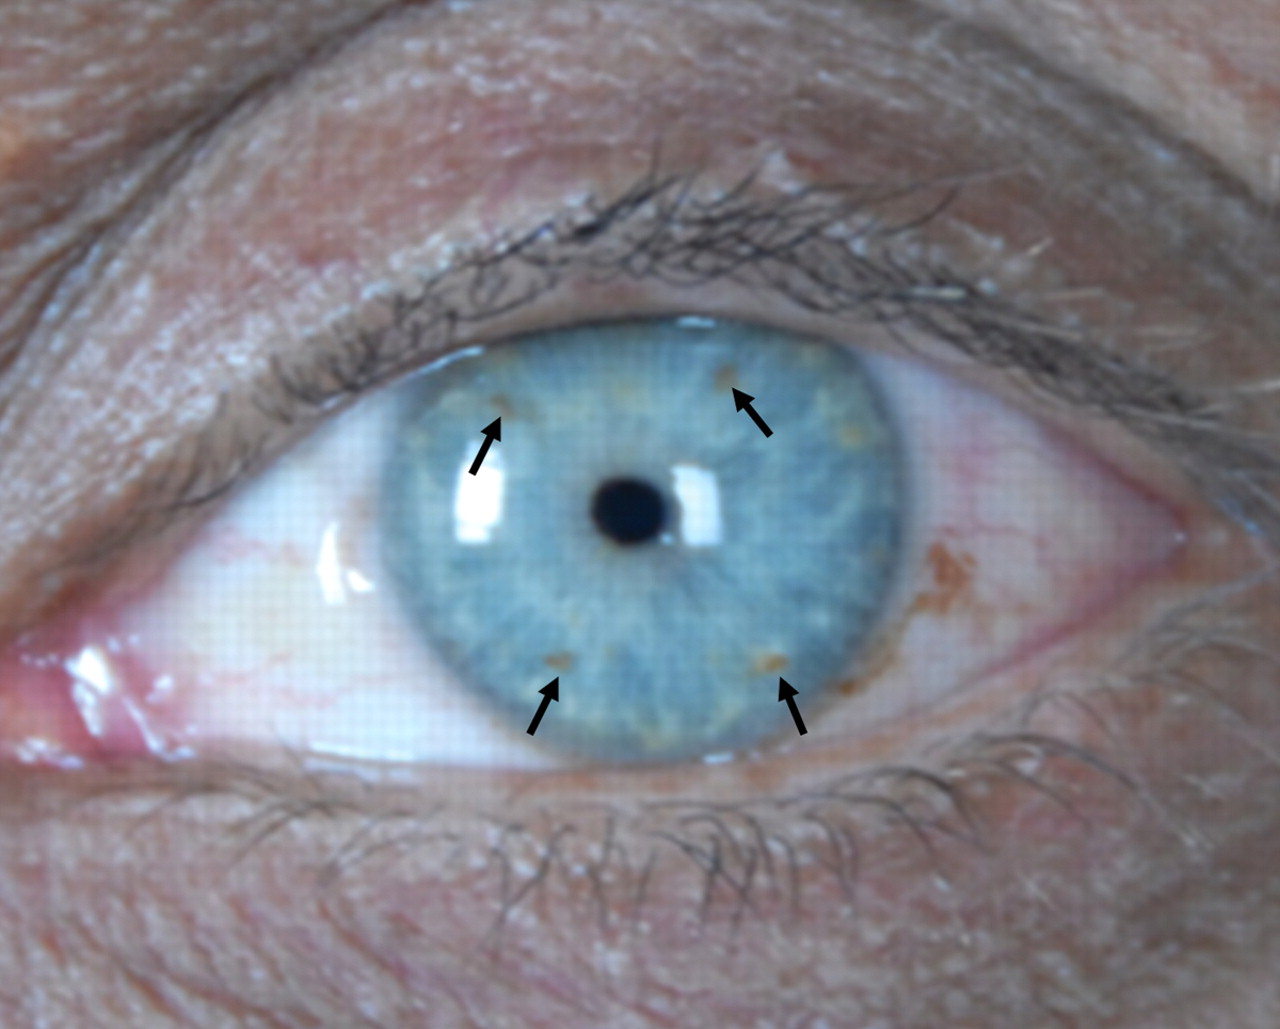 A patient with loss of vision in the right eye and ...